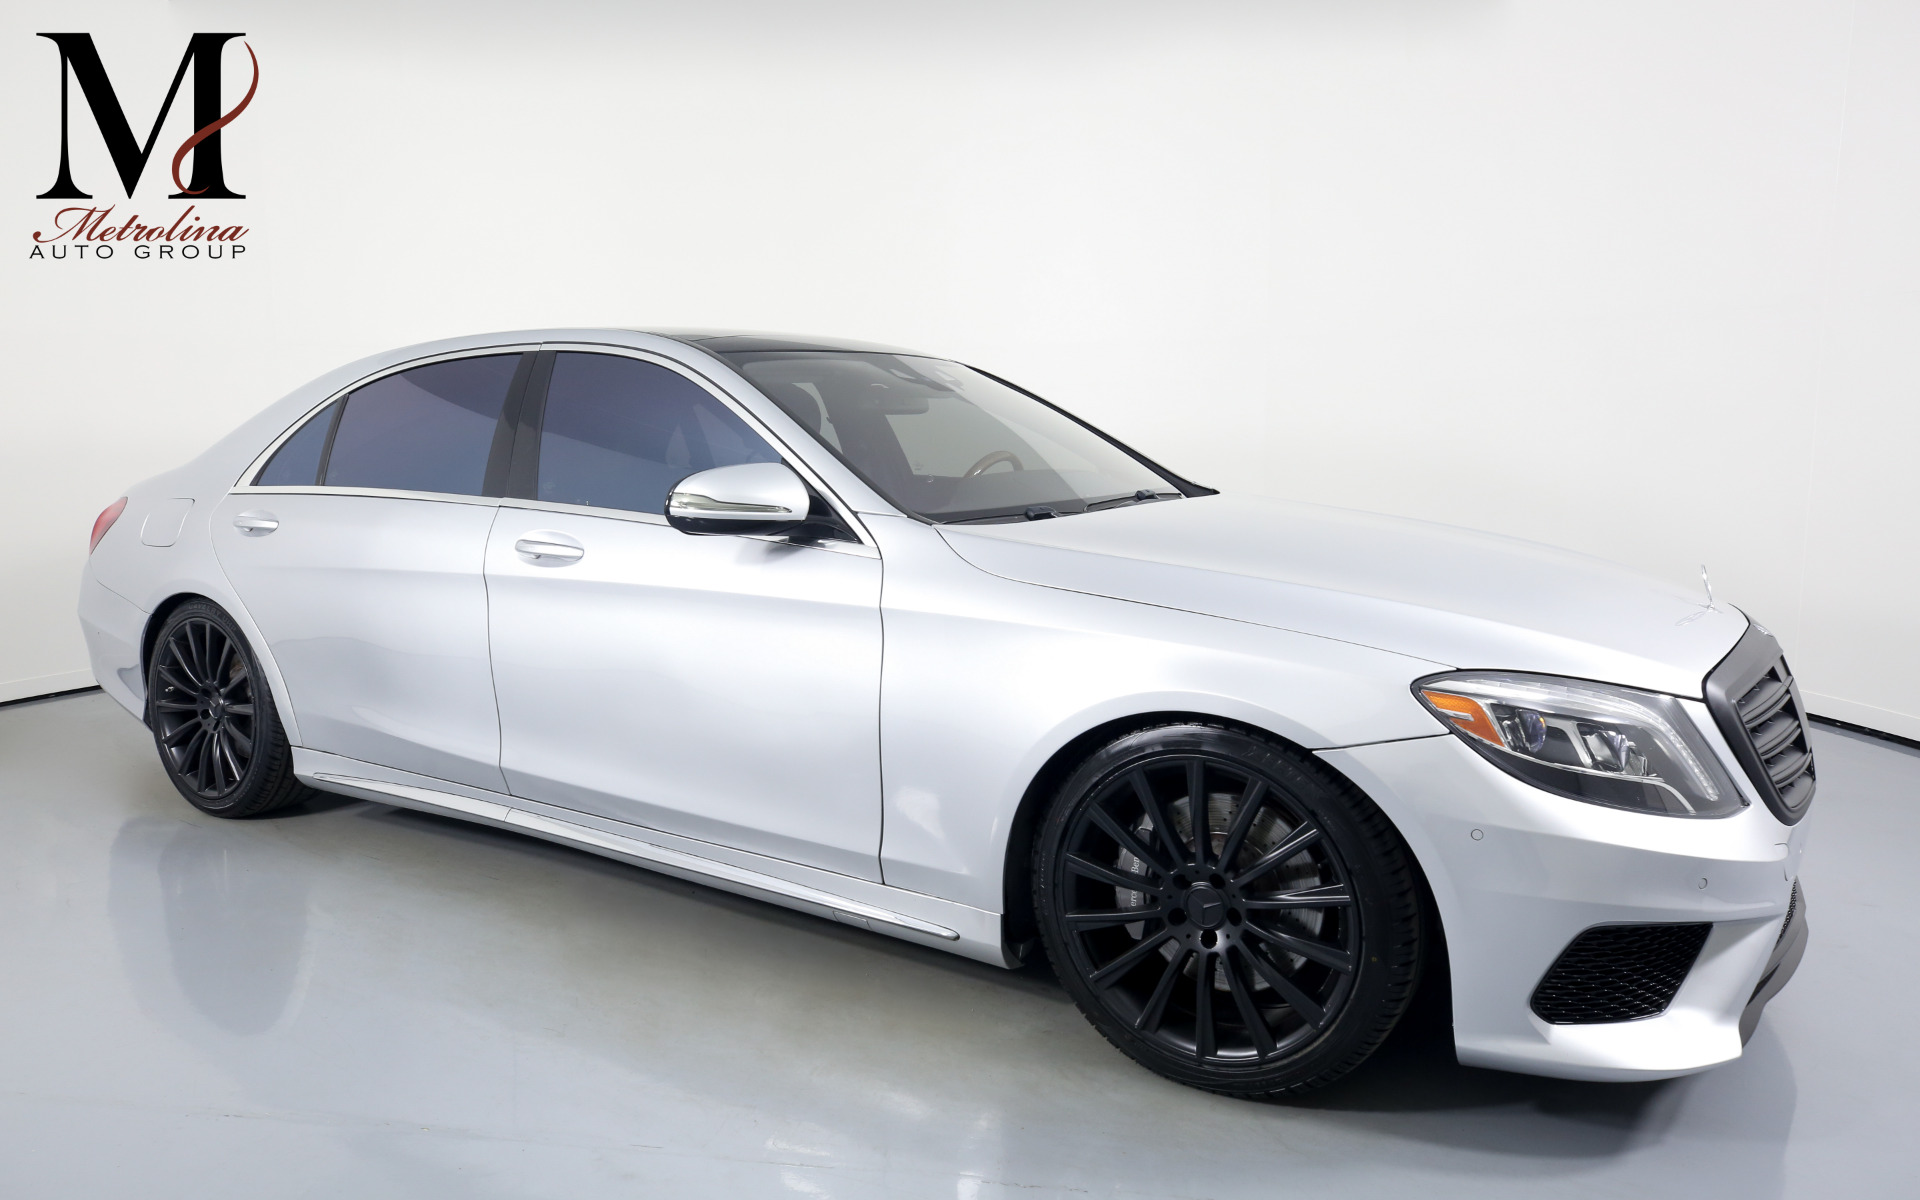 Used 2014 Mercedes-Benz S-Class S 550 for sale $39,996 at Metrolina Auto Group in Charlotte NC 28217 - 1